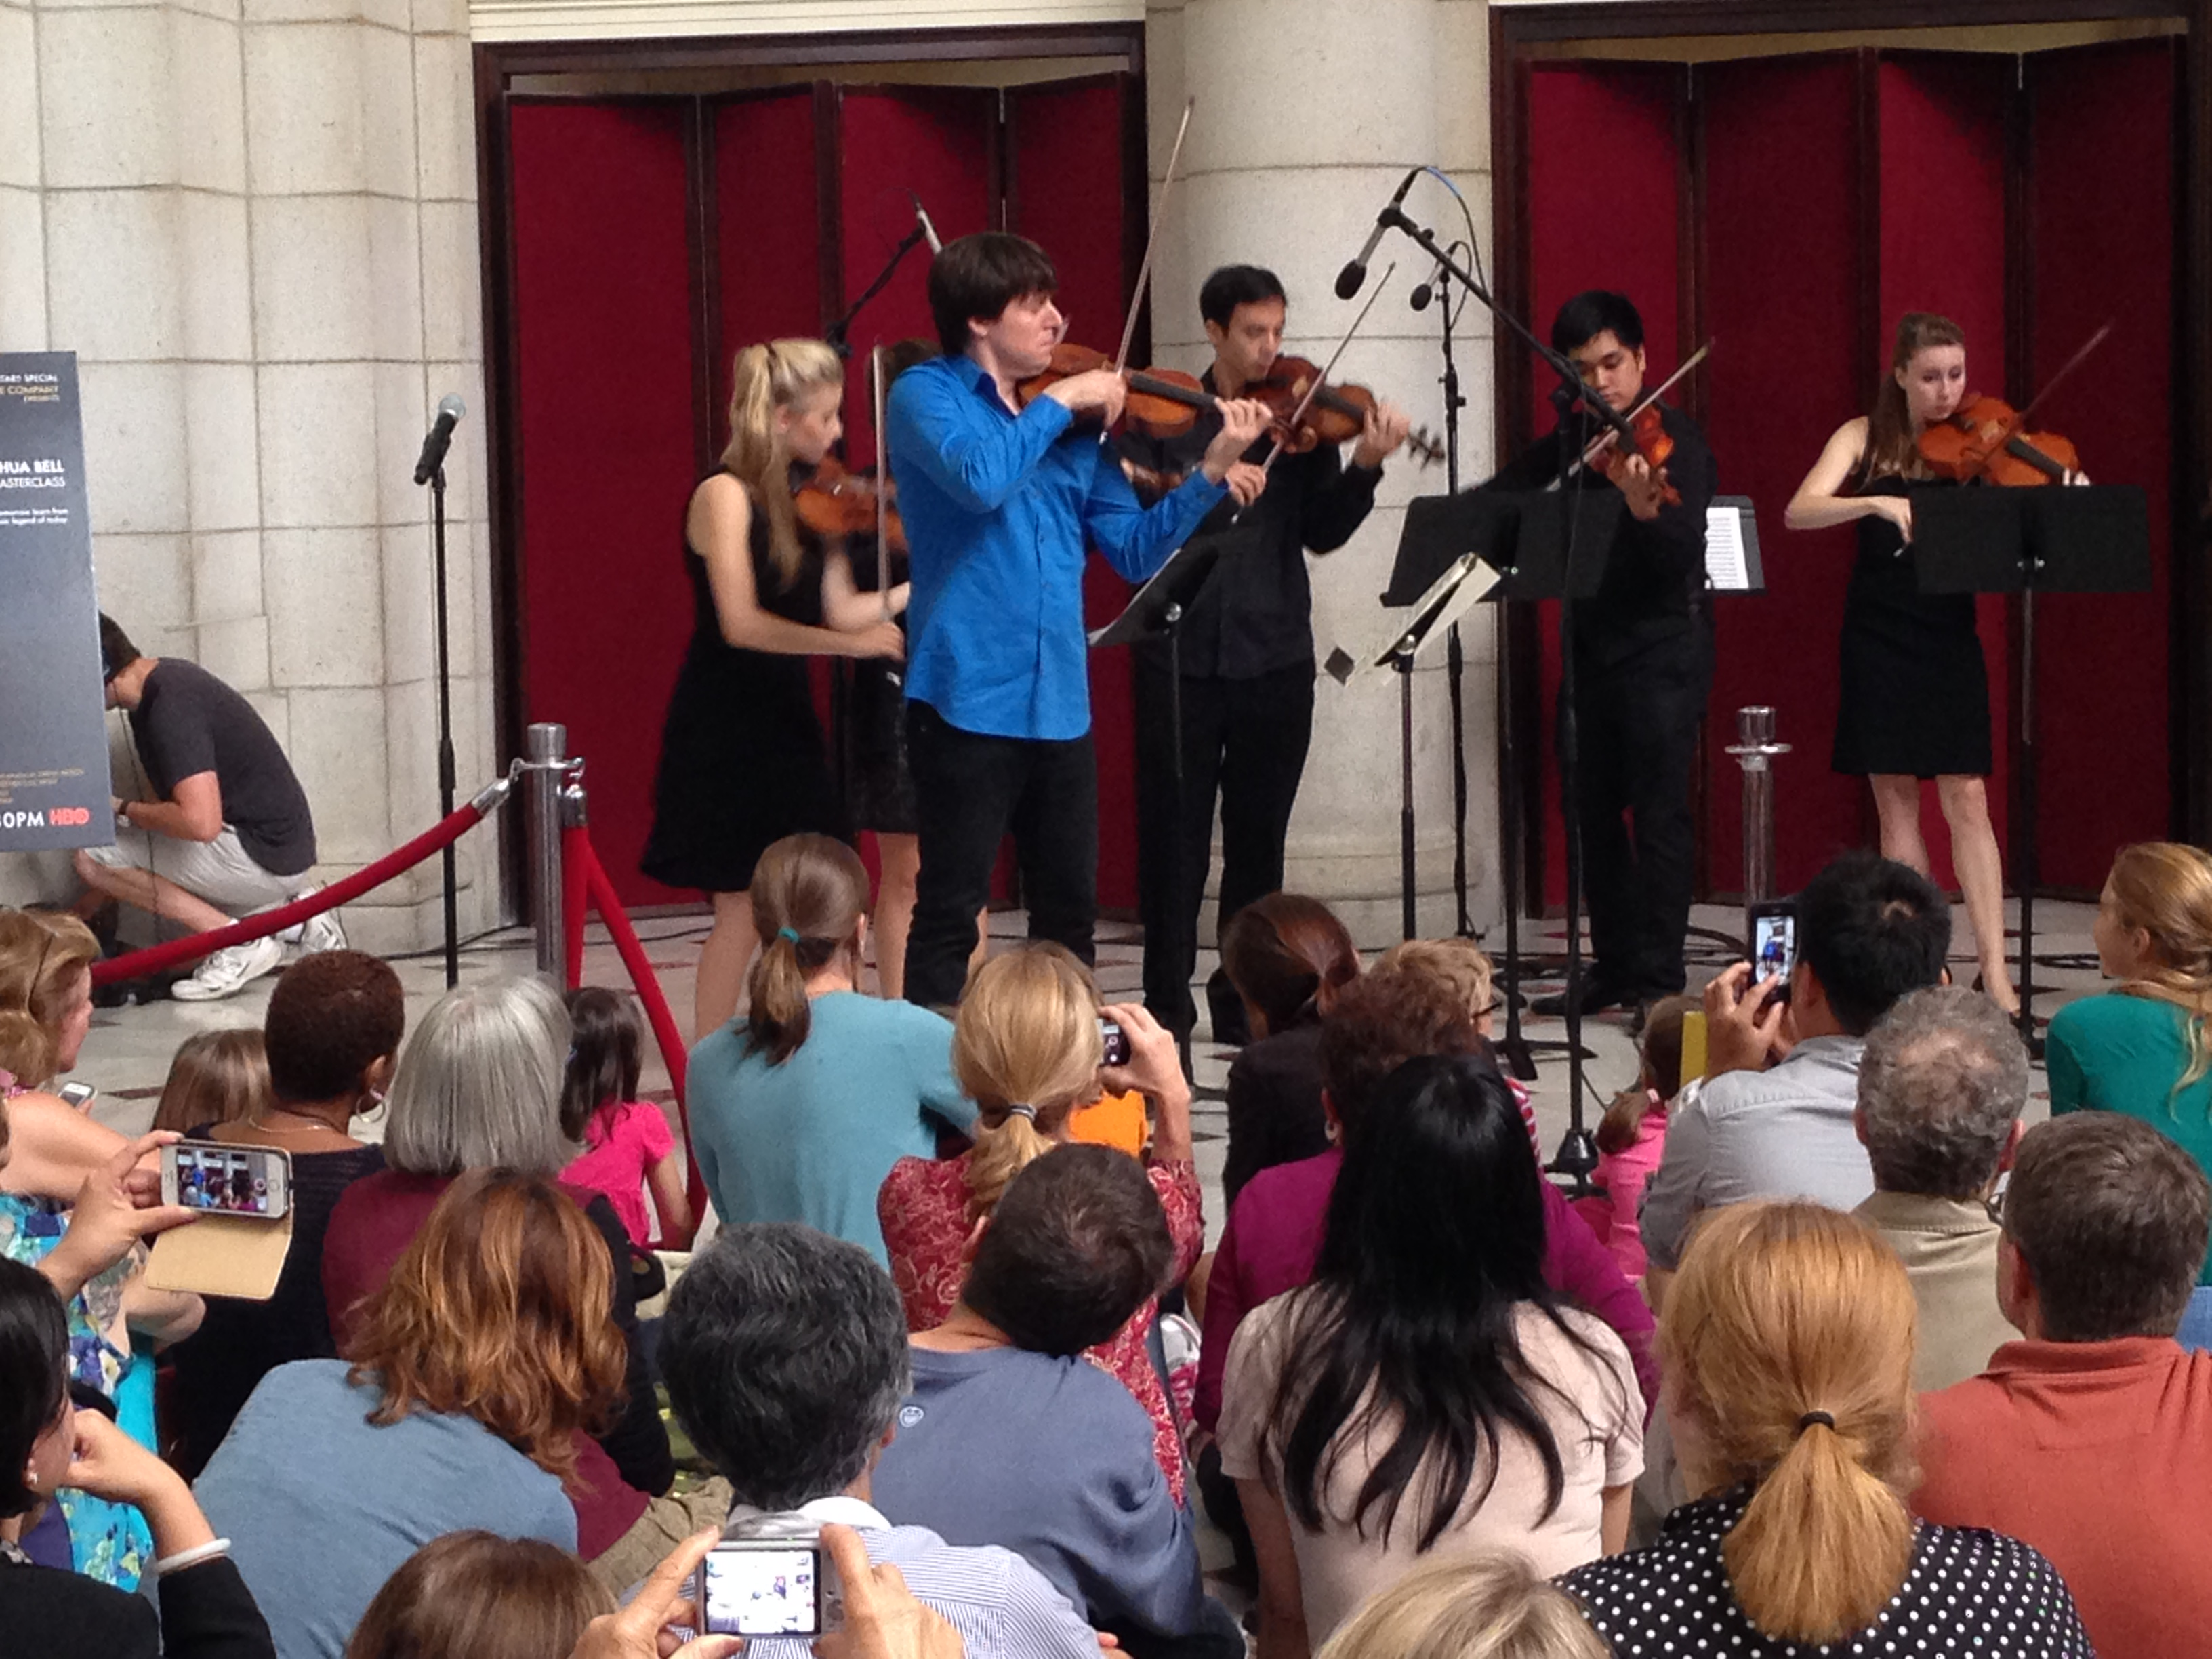 Joshua Bell performs in Union Station in Washington, D.C. on September 30, 2014.